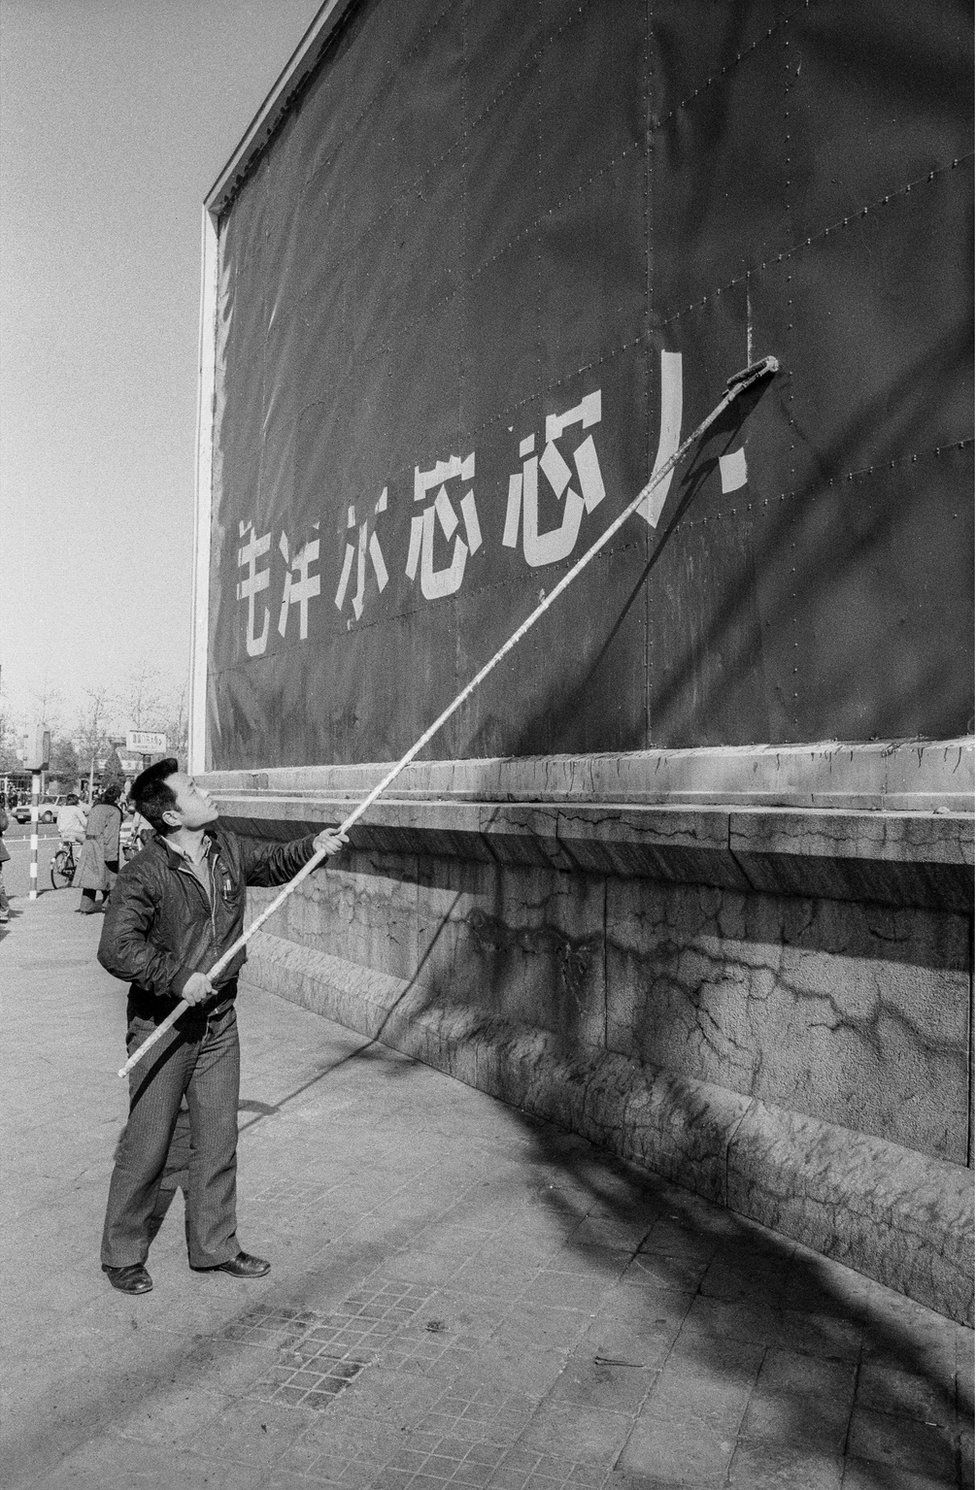 A man paints over a billboard